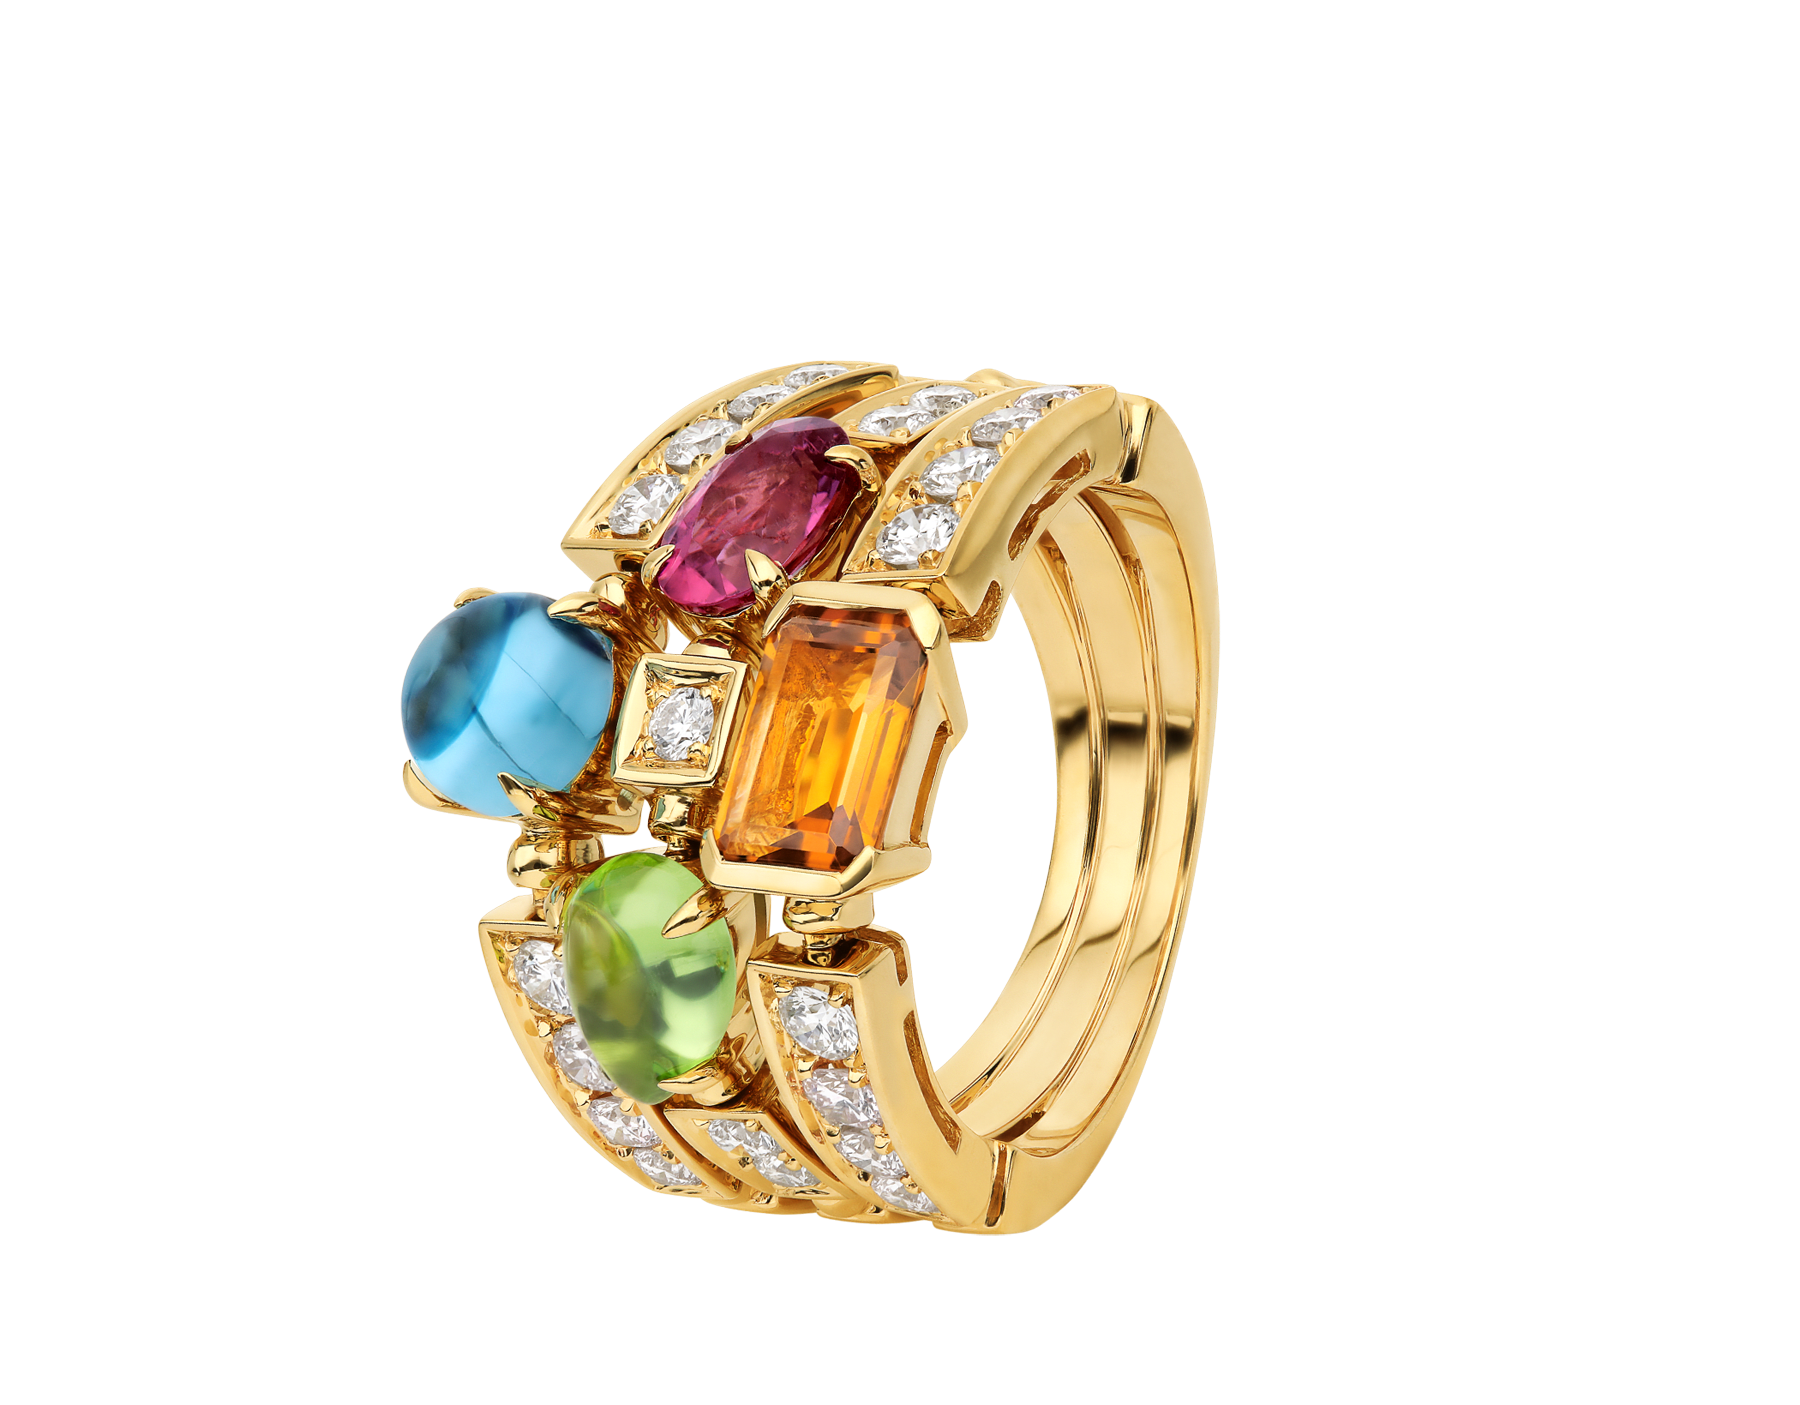 Colore three-band 18 kt yellow gold ring set with pink tourmaline, peridot, citrine quartz, blue topaz and pavé diamonds AN852171 image 1